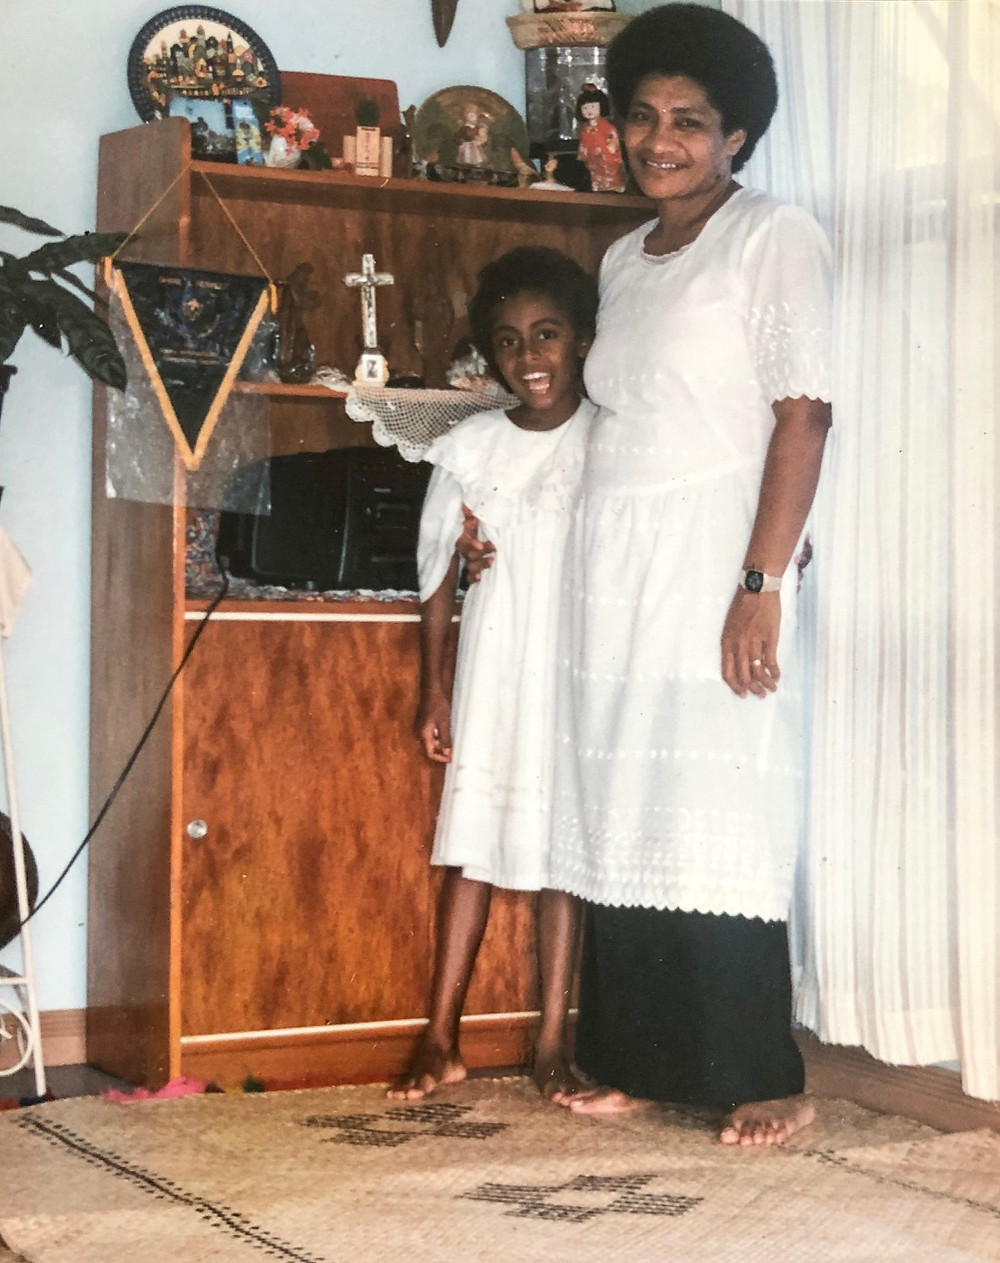 Fijian In The UK - My mother & I in our Sunday best